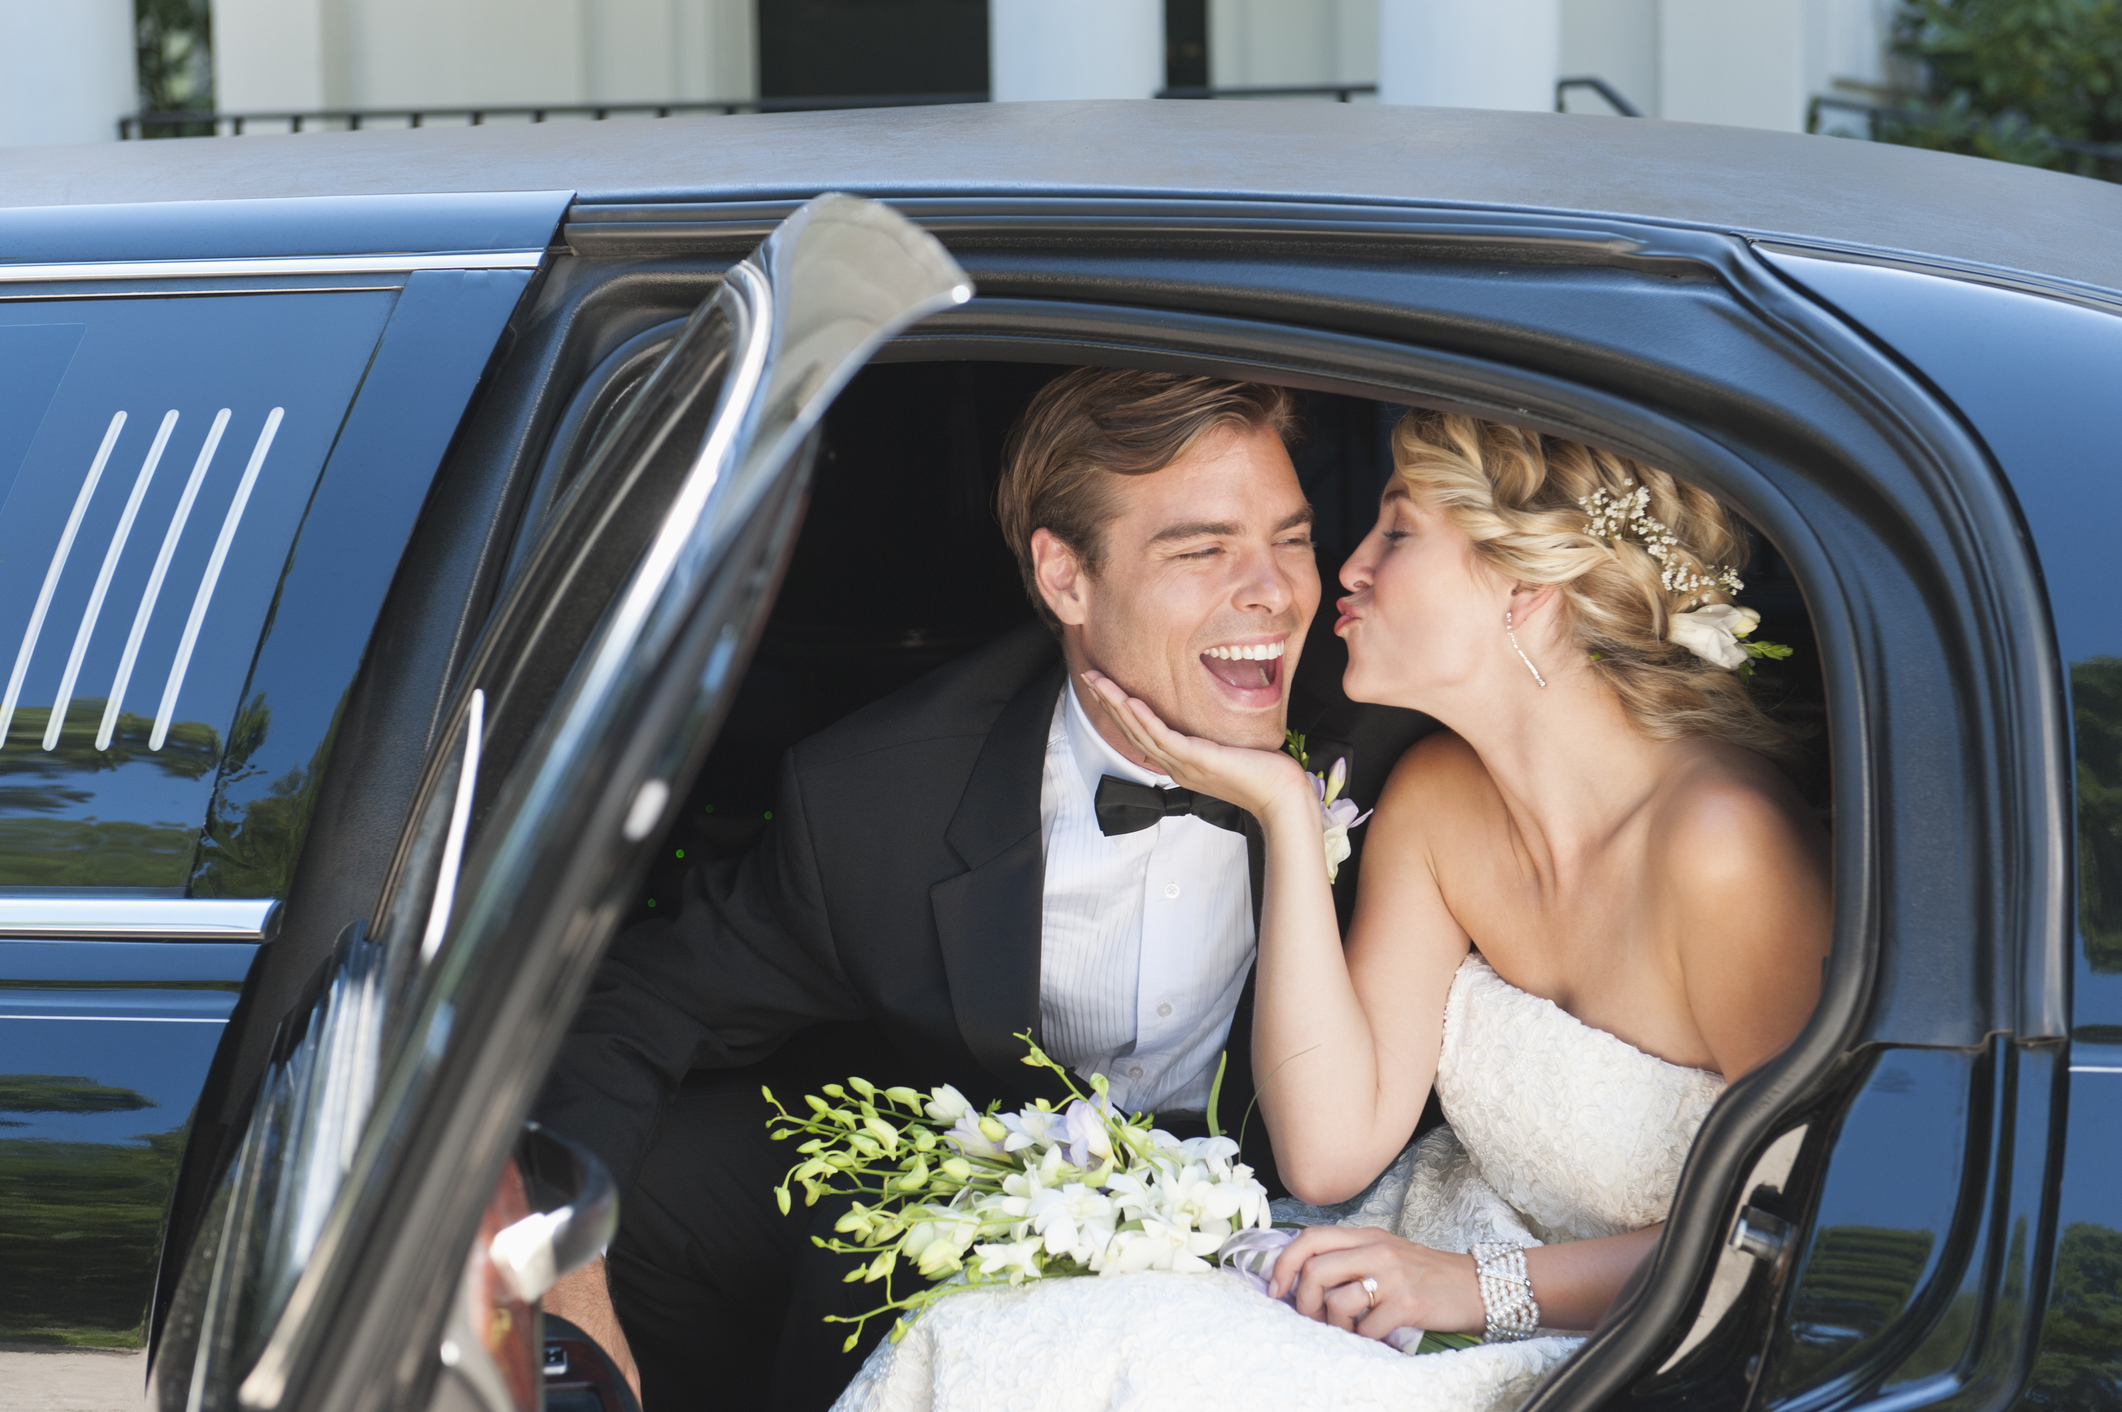 A couple getting into a limousine and leaving their wedding.